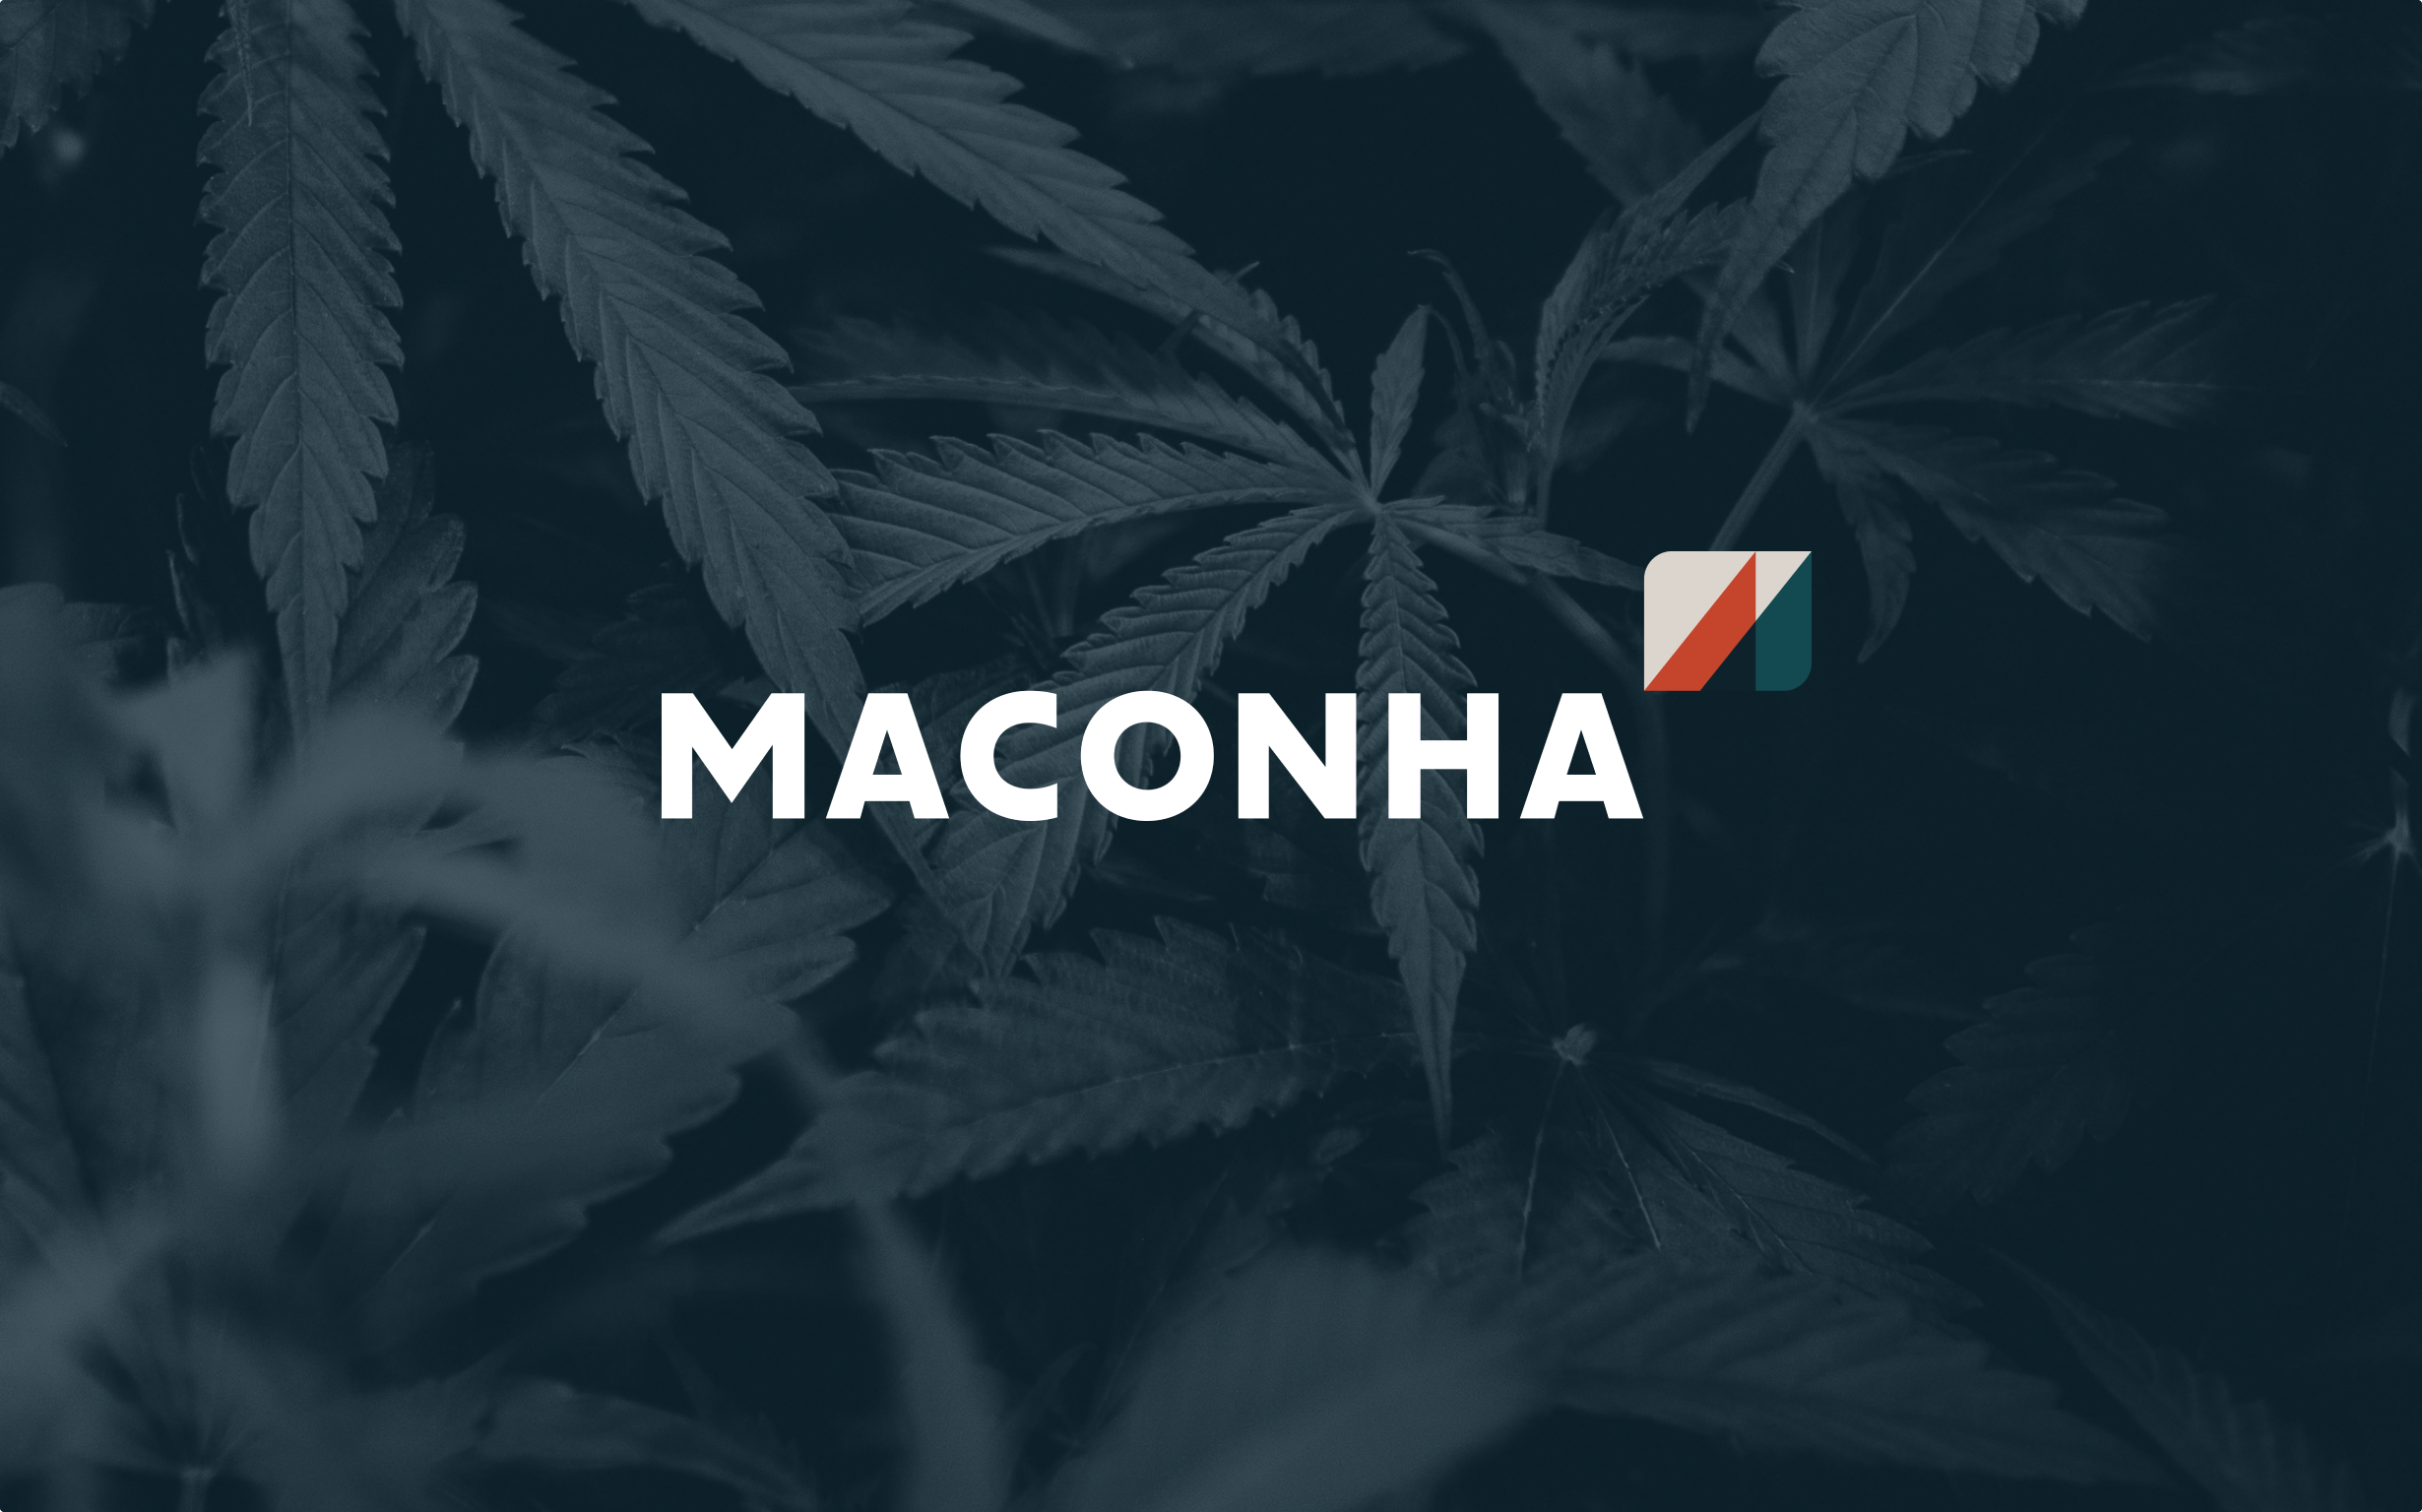 The Maconha wordmark and logo set on a dark green background of cannabis leaves.